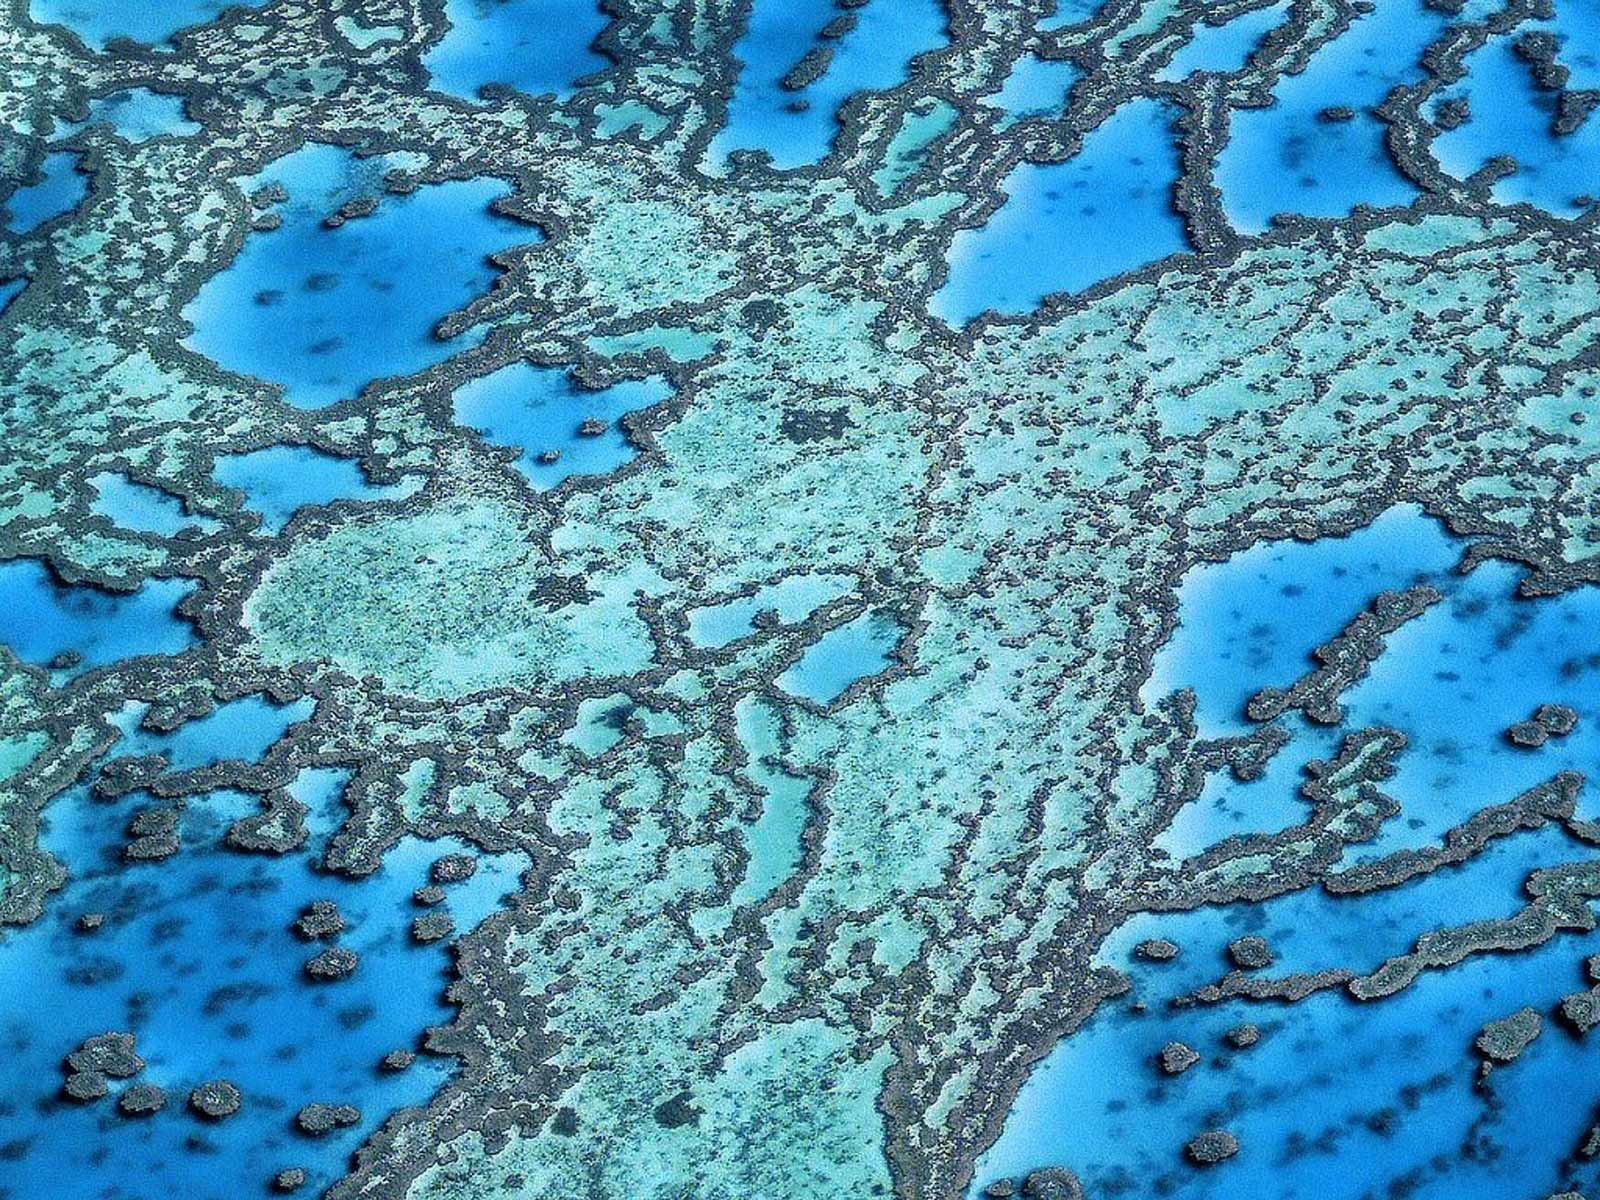 http://2.bp.blogspot.com/-wBfTTOdmXr0/T1-gd06KpCI/AAAAAAAACmk/zmDxa4y0SBs/s1600/Great_Barrier_Reef_wallpaper_pictures_4.jpg